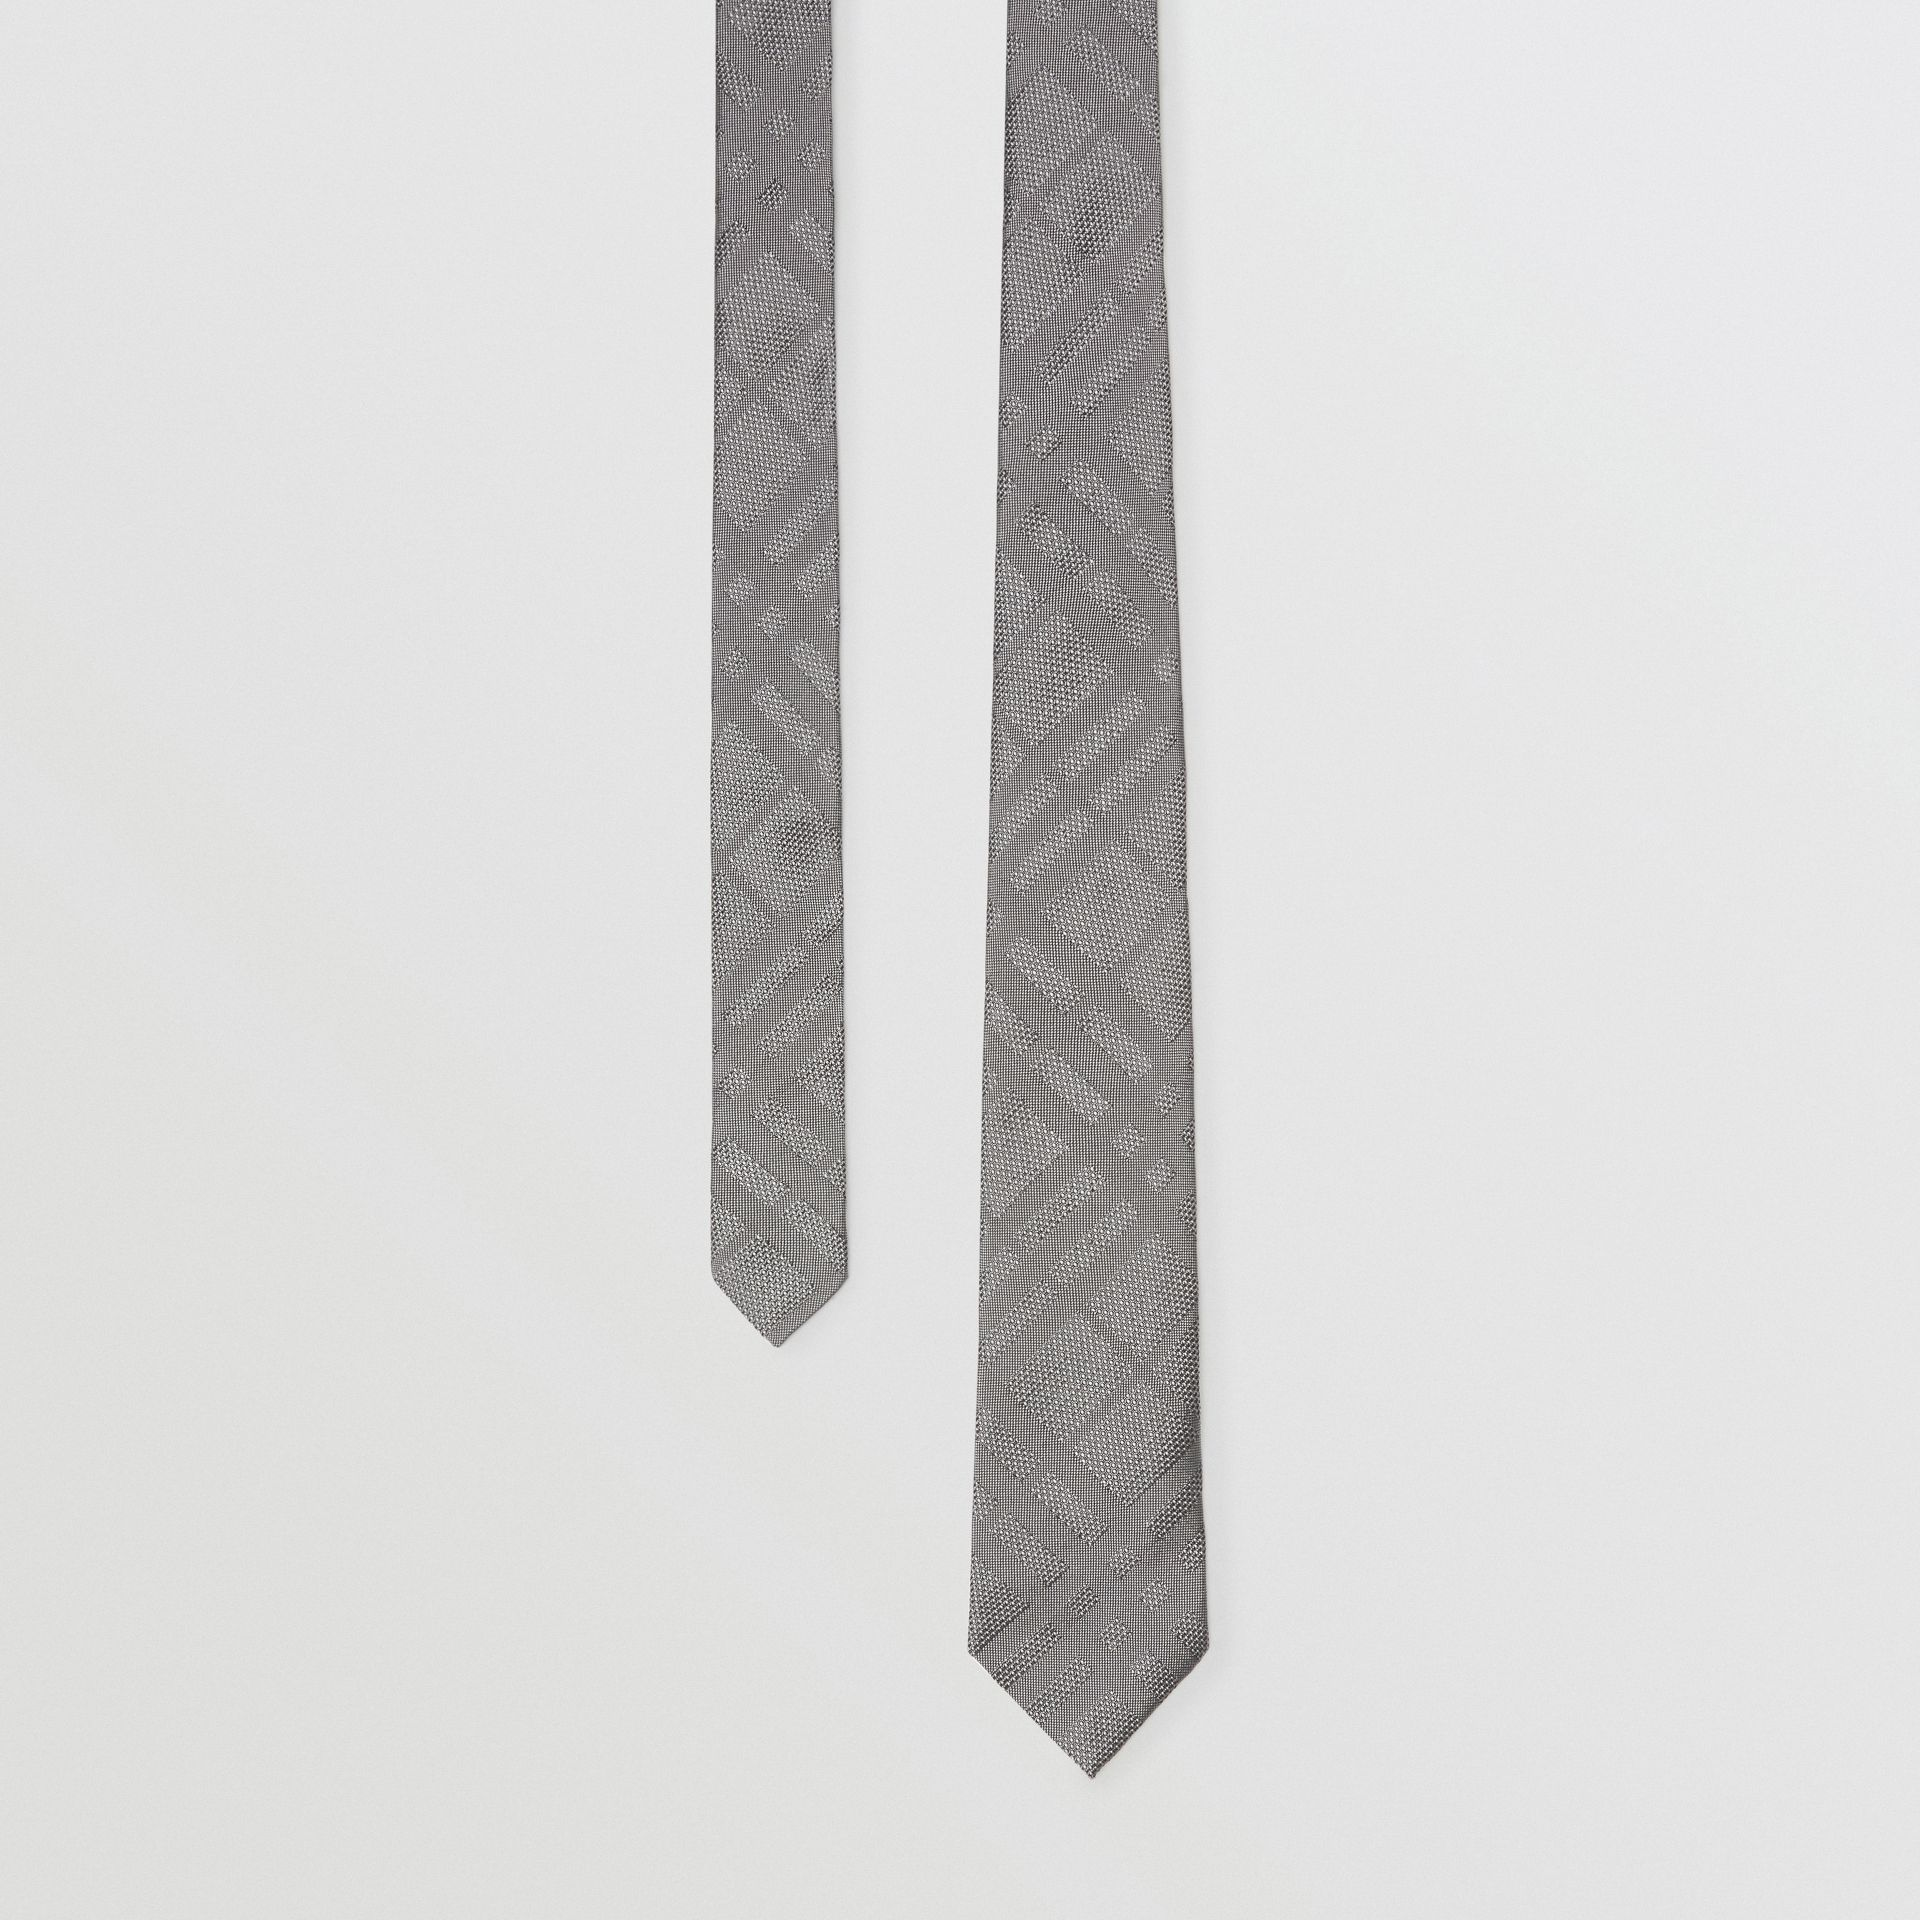 Classic Cut Check Silk Jacquard Tie in Charcoal - Men | Burberry United Kingdom - gallery image 0